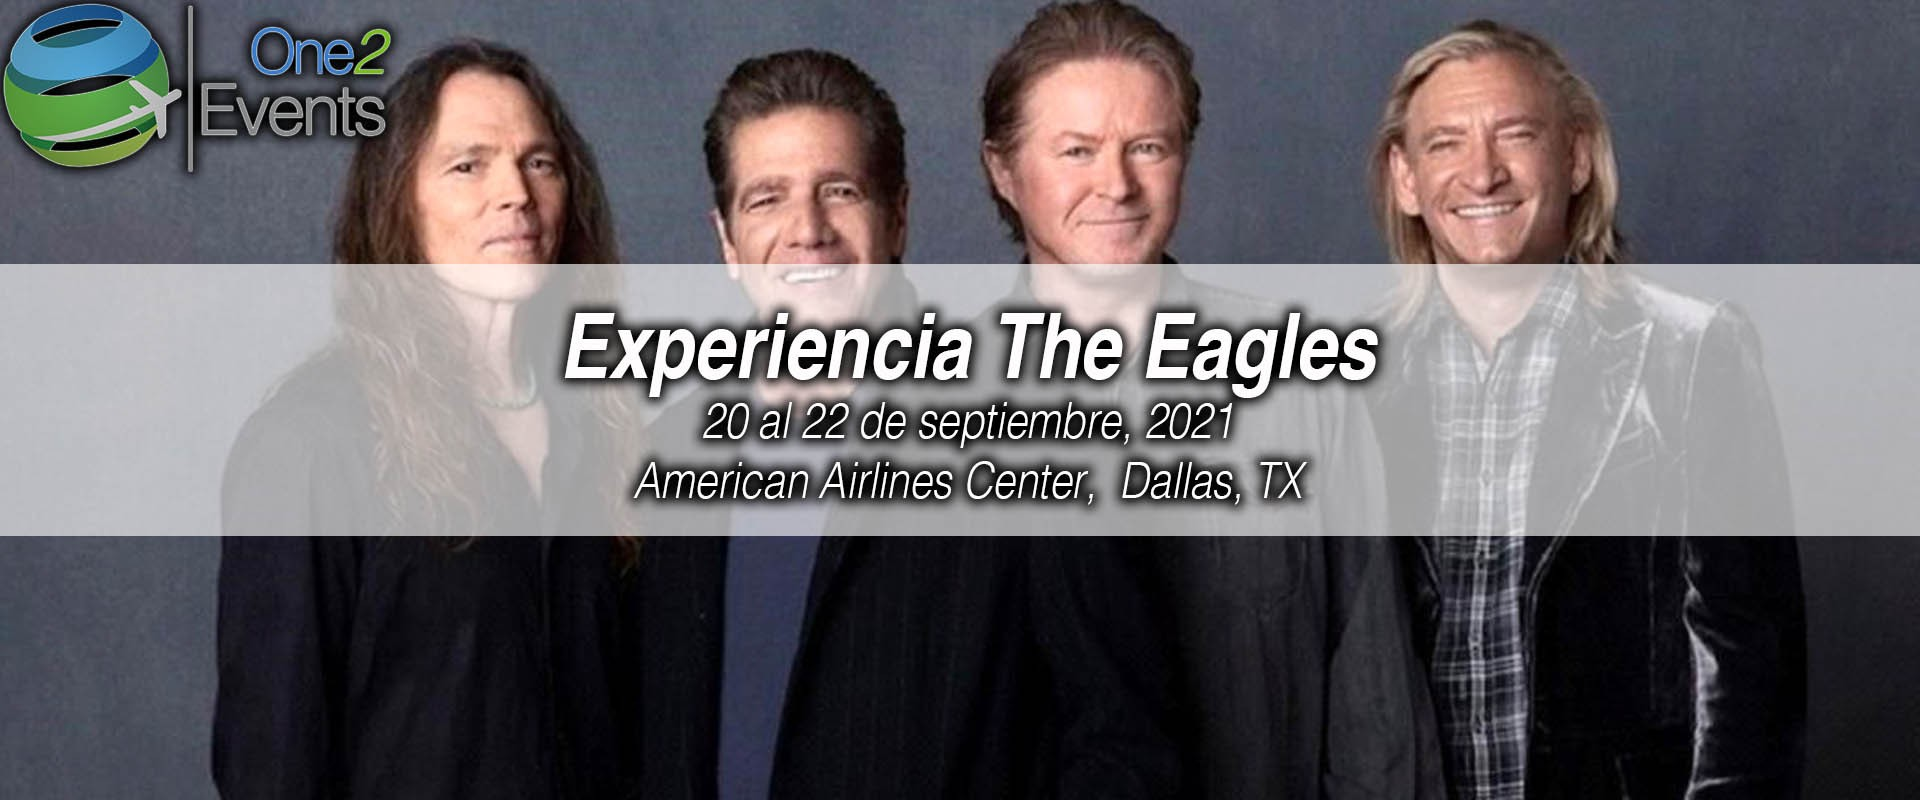 Concierto The Eagles American Airlines Center, Dallas